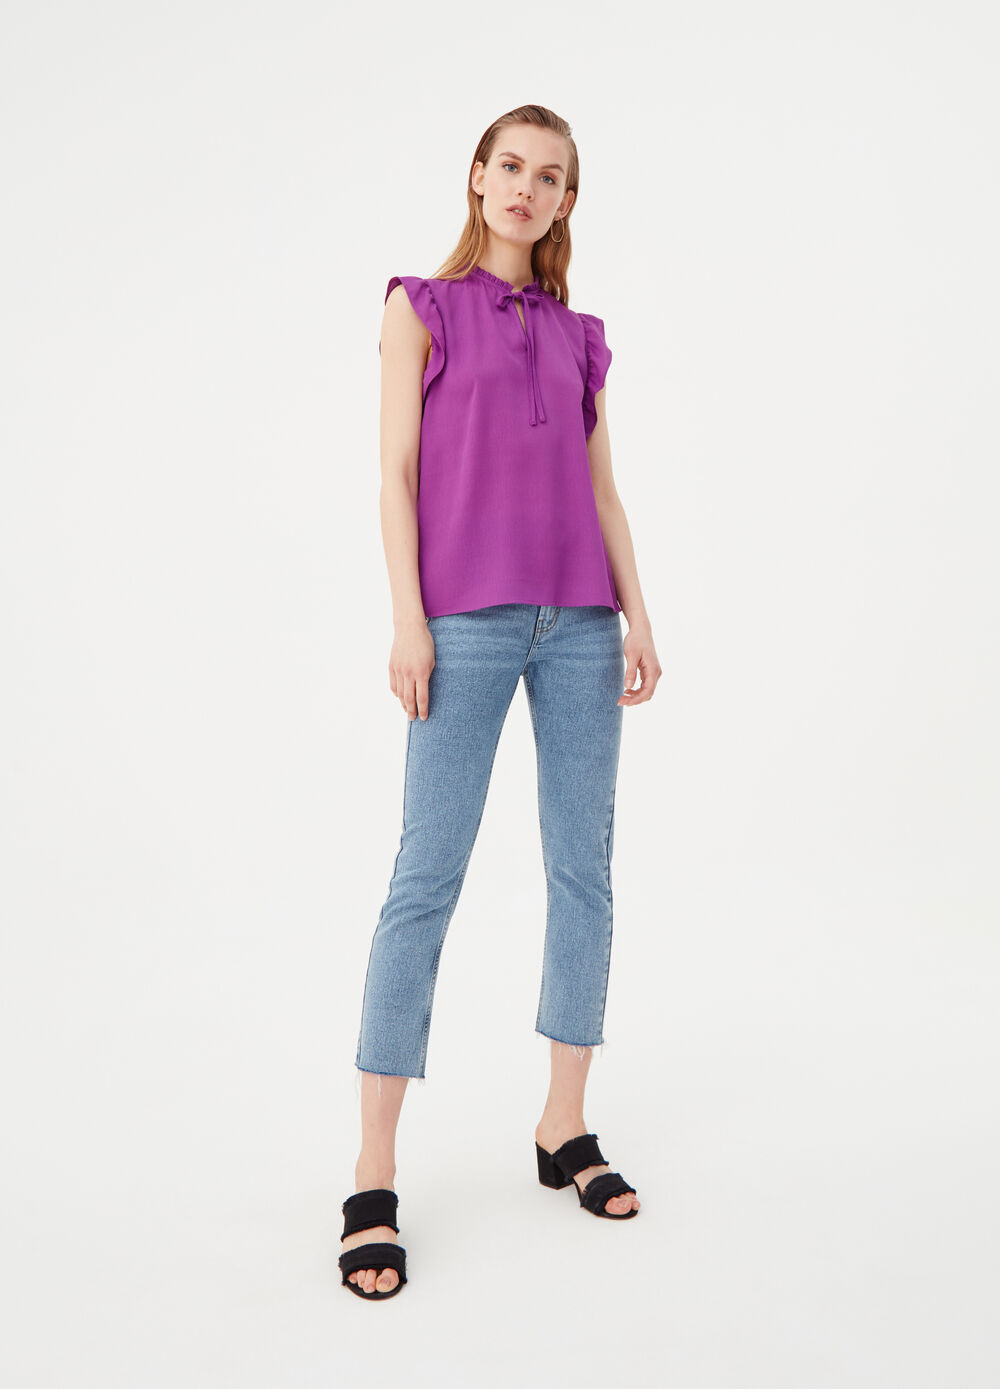 Sleeveless shirt with ruches